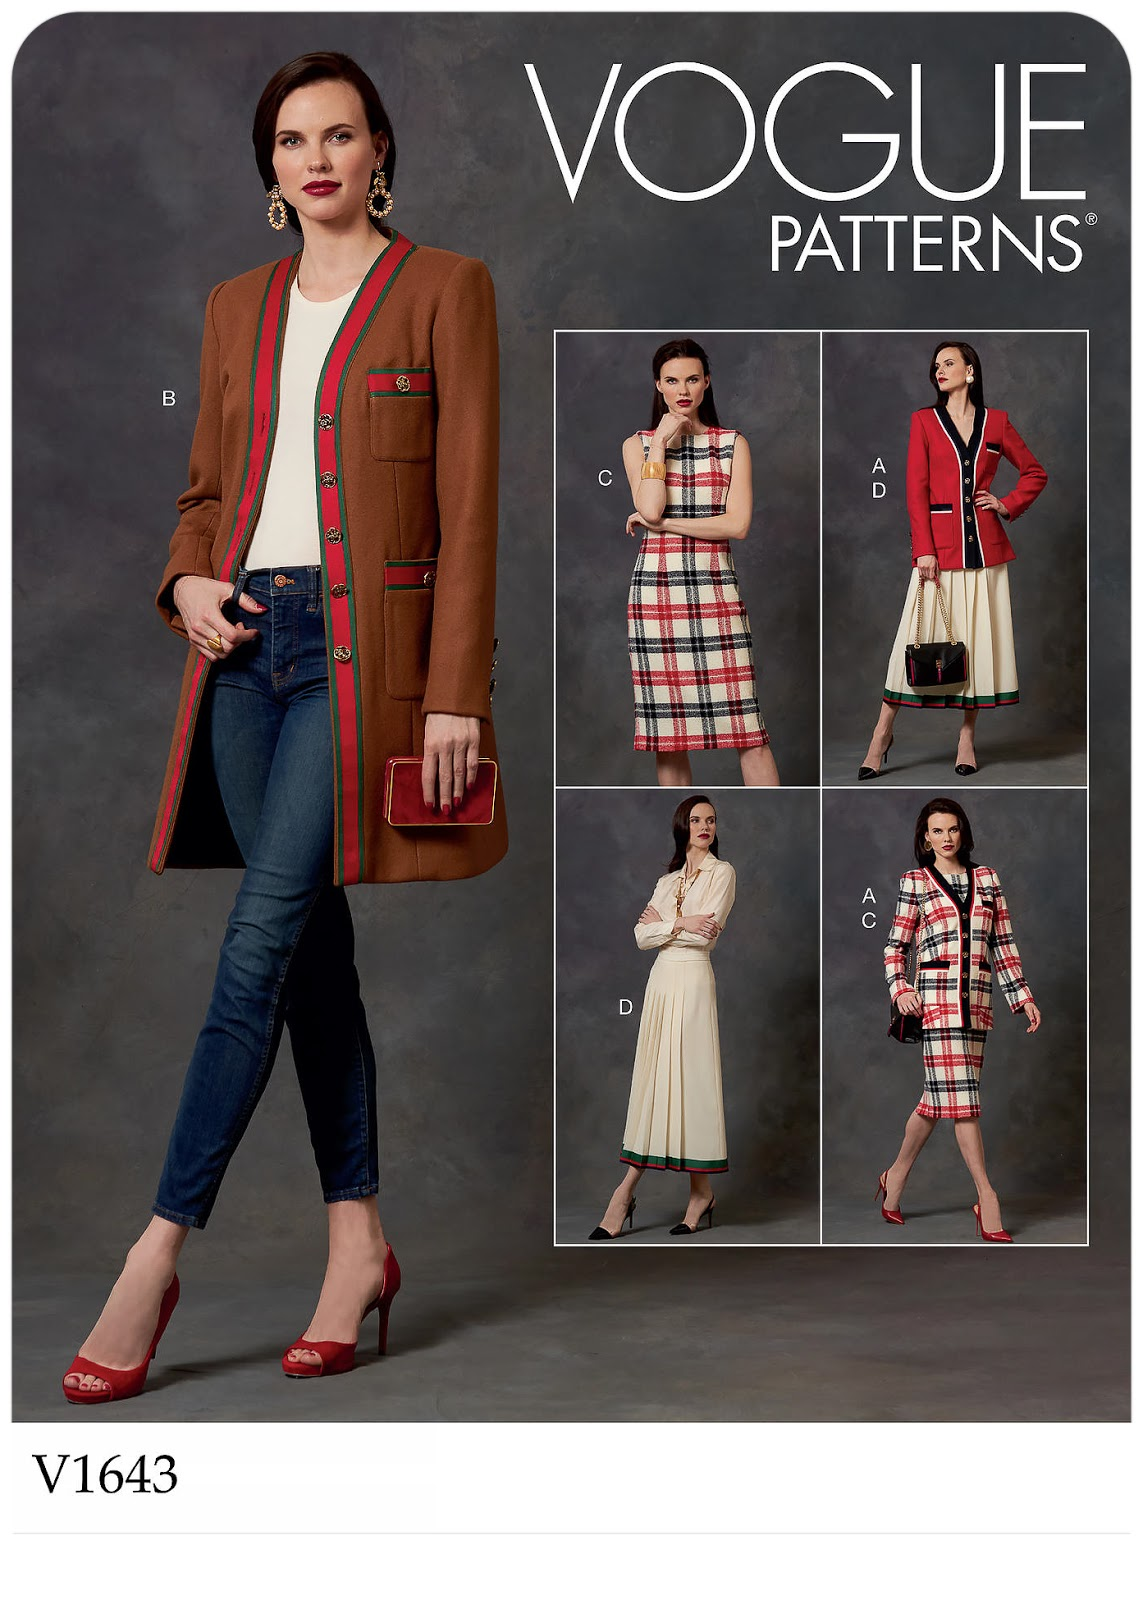 Vogue Patterns 1643 - #V1643